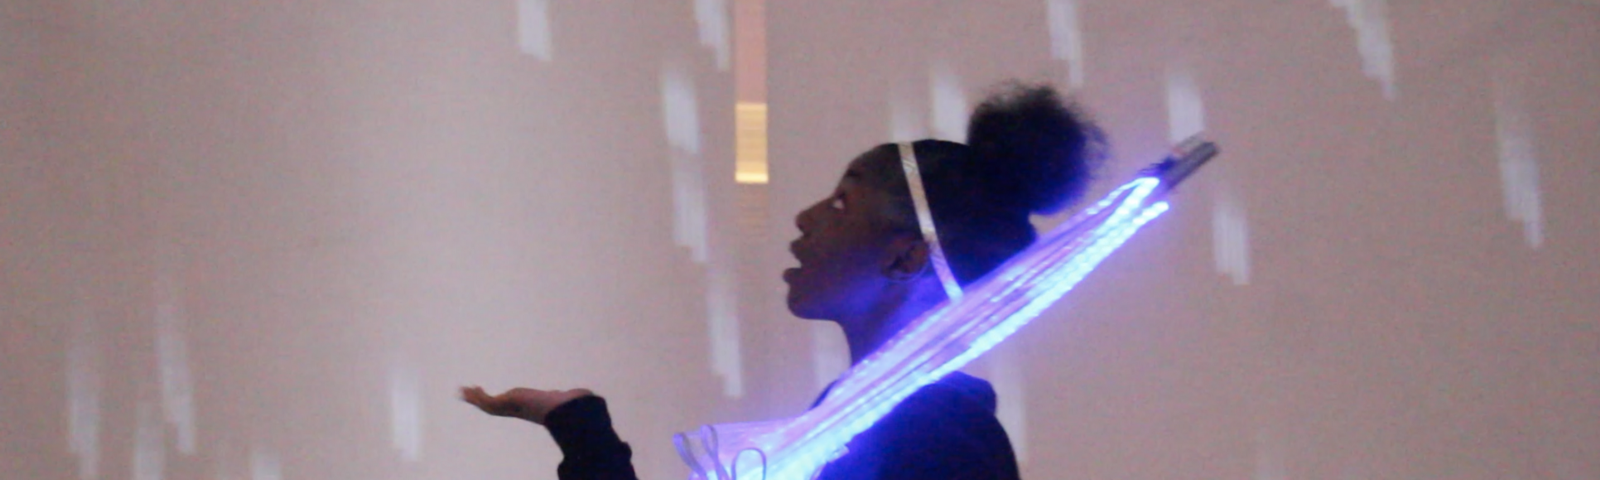 A young girl holds an illuminated umbrella. She holds out her hand and looks up at digital rain.